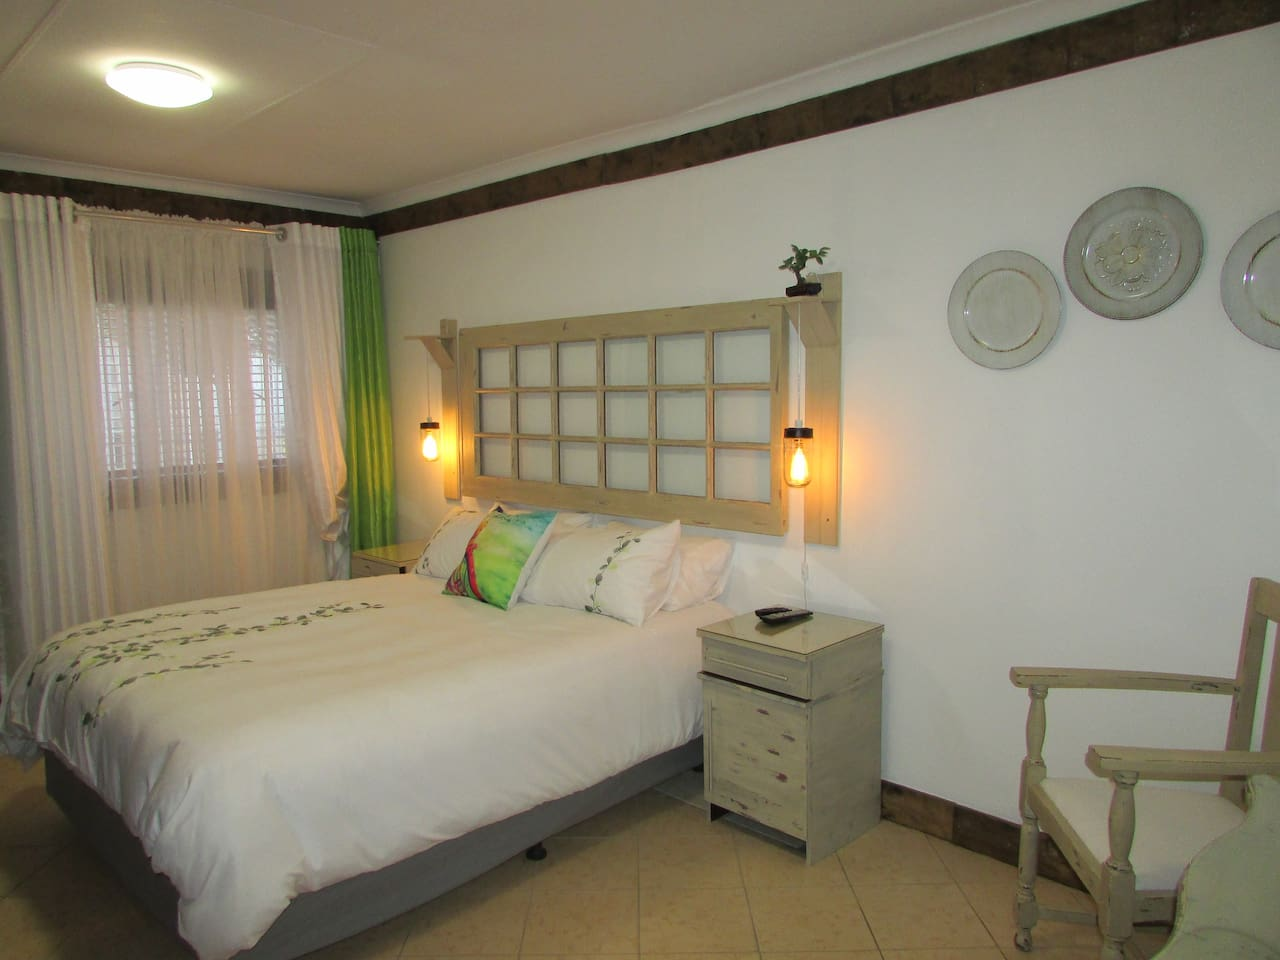 Spacious room with double bed, en-suite bathroom and TV with DSTV - own entrance